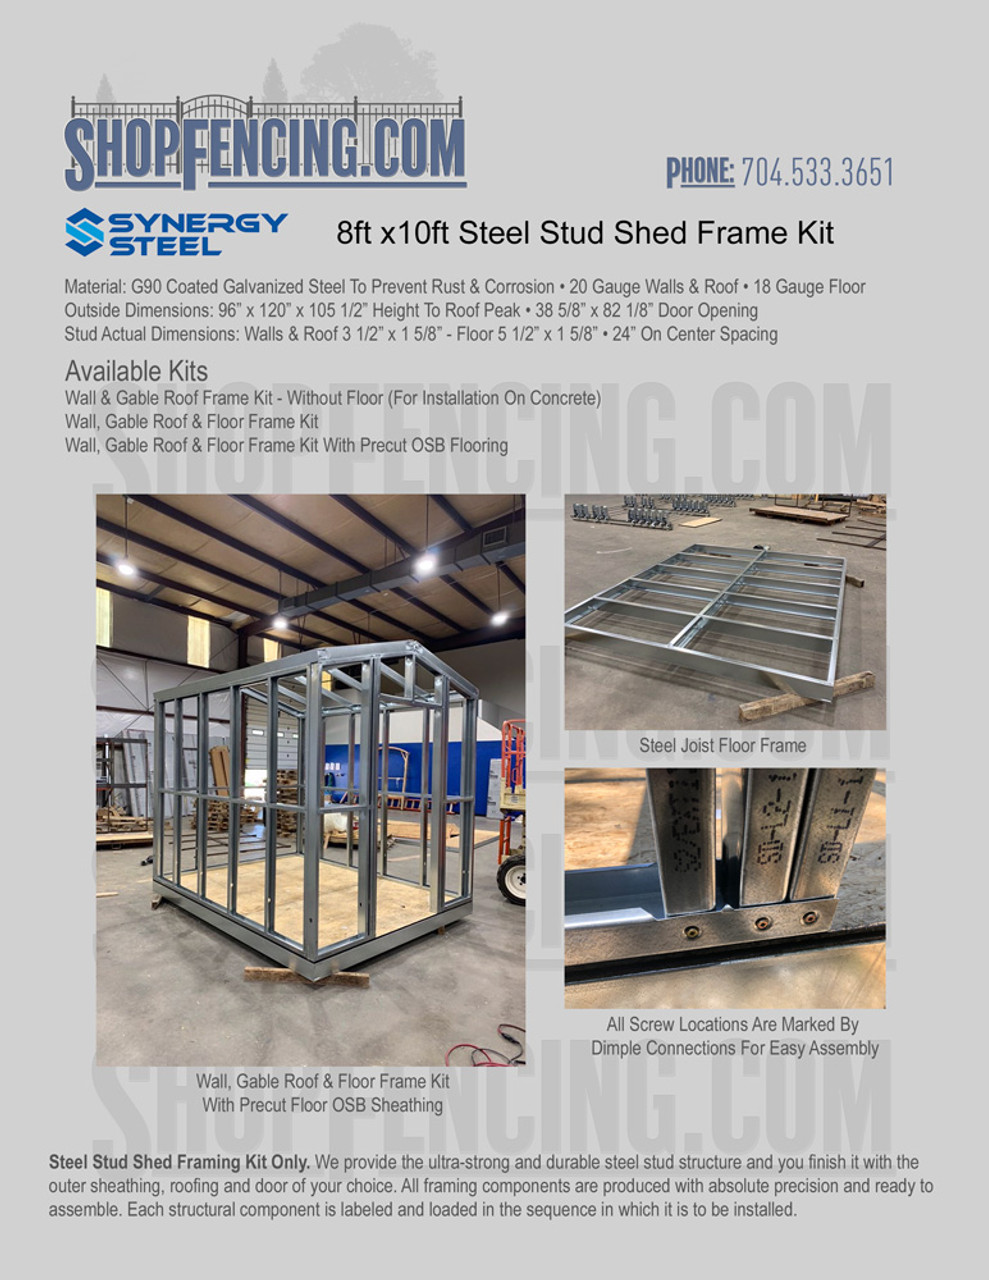 8x10 Steel Shed Frame Kit From ShopFencing.com